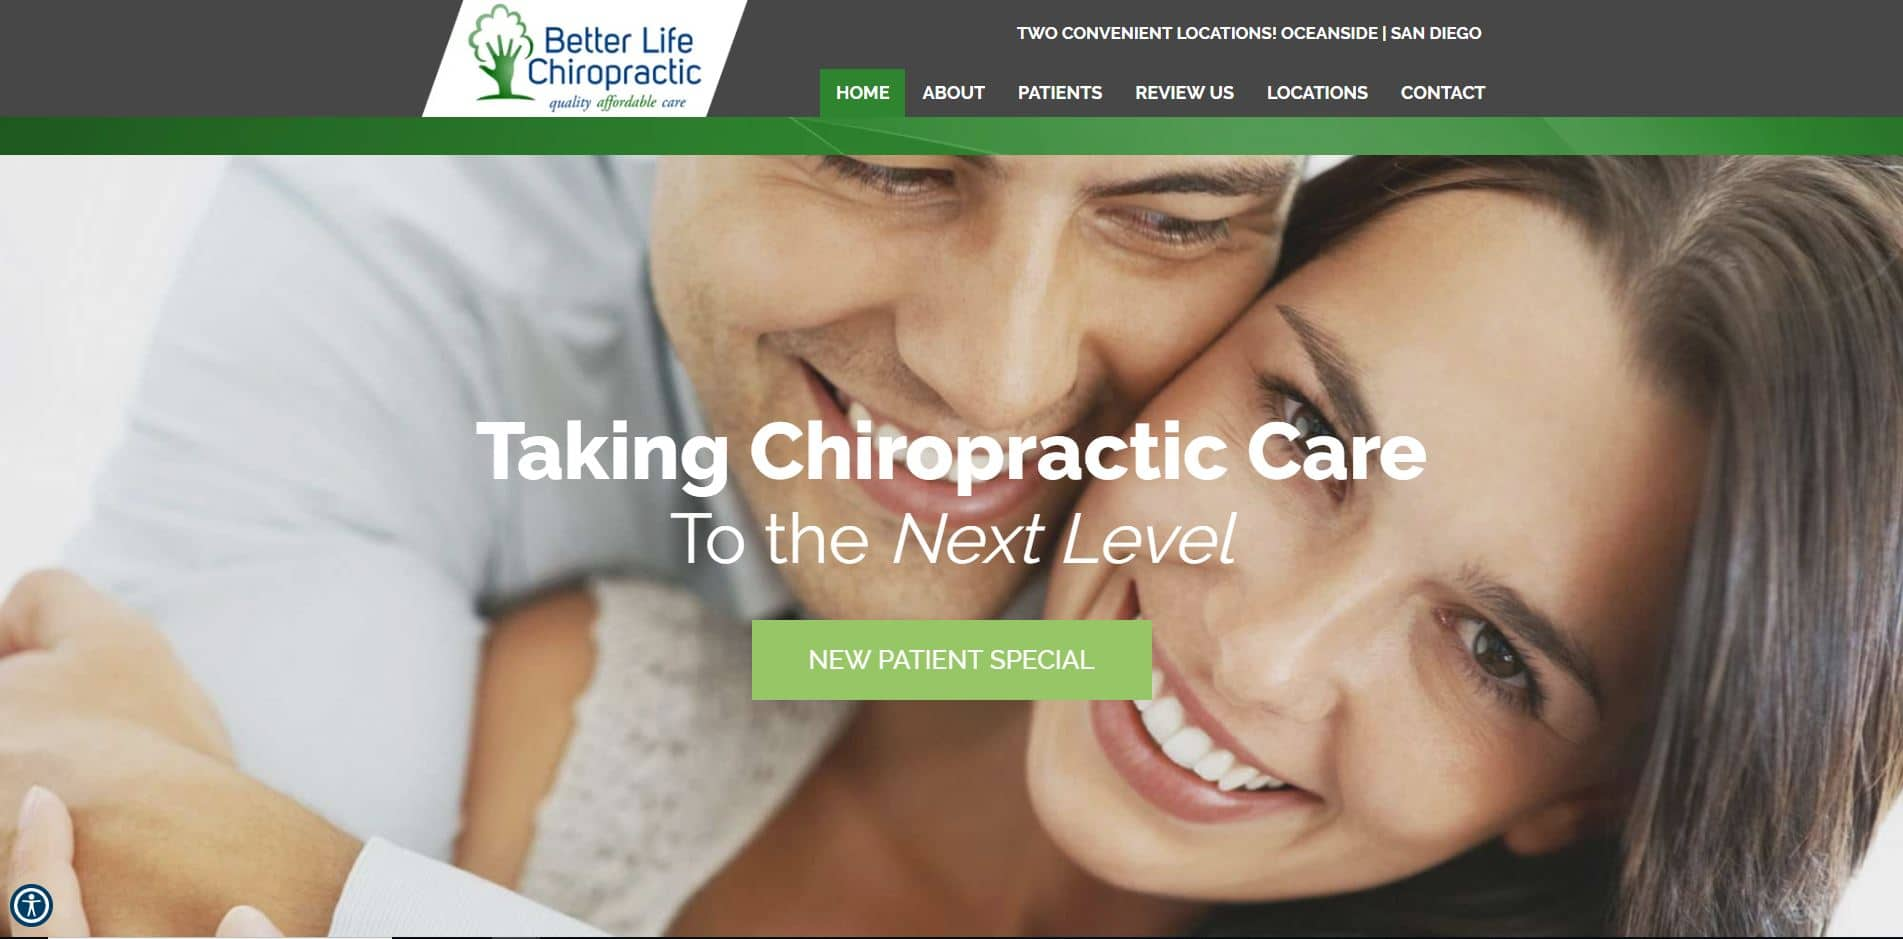 Chiropractor in Oceanside